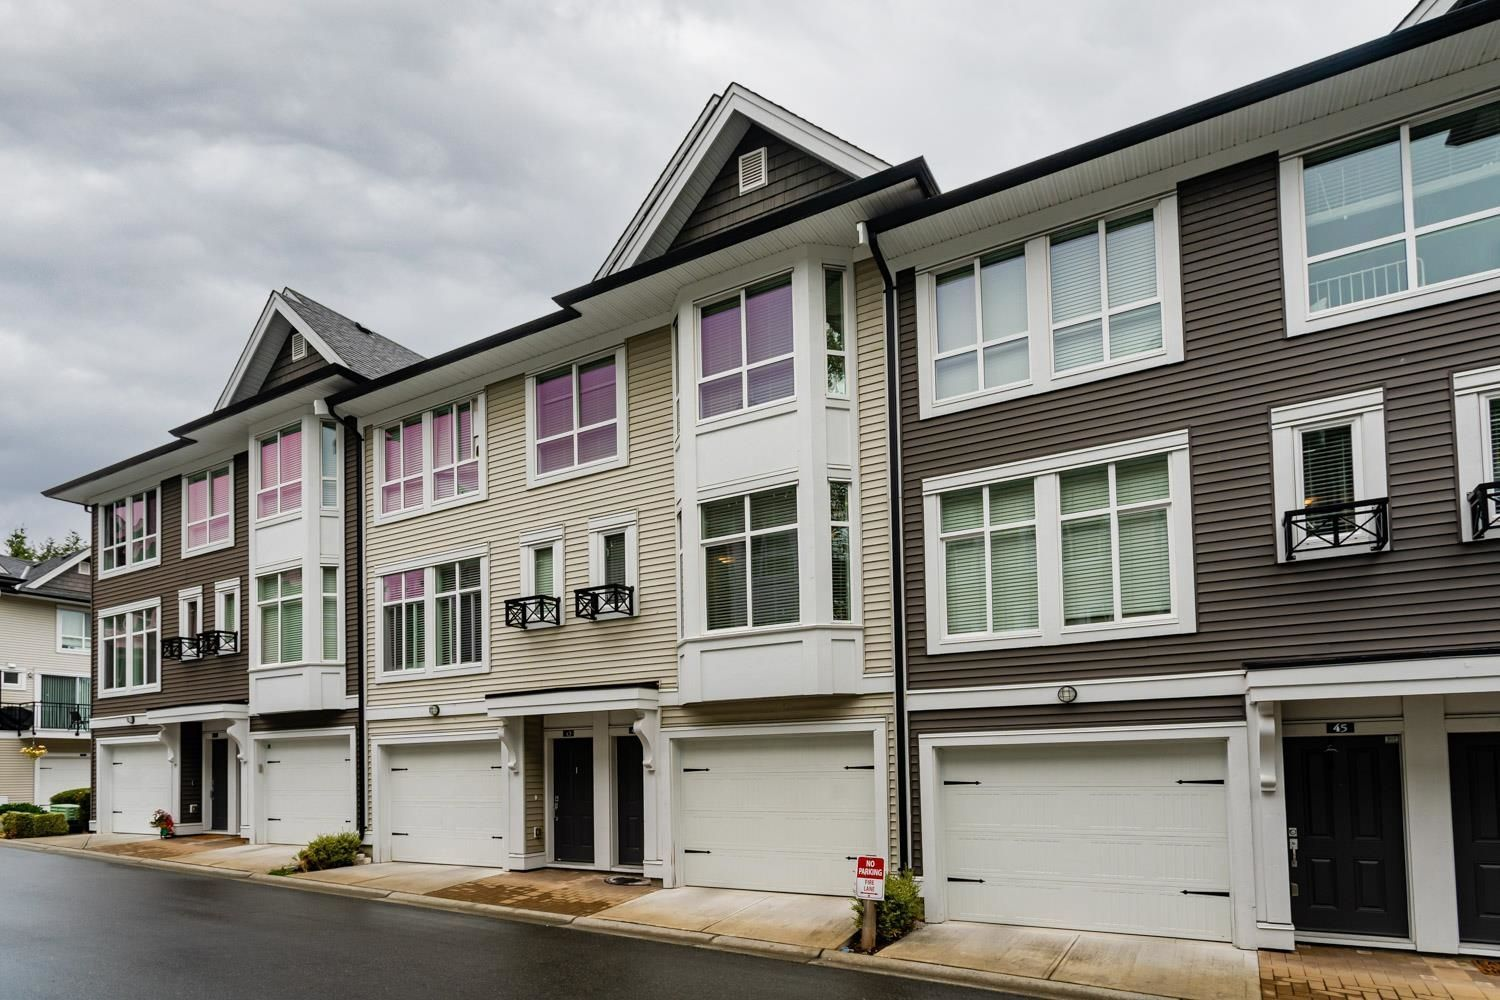 Main Photo: 44 14433 60 Avenue in : Sullivan Station Townhouse for sale (Surrey)  : MLS®# R2610172